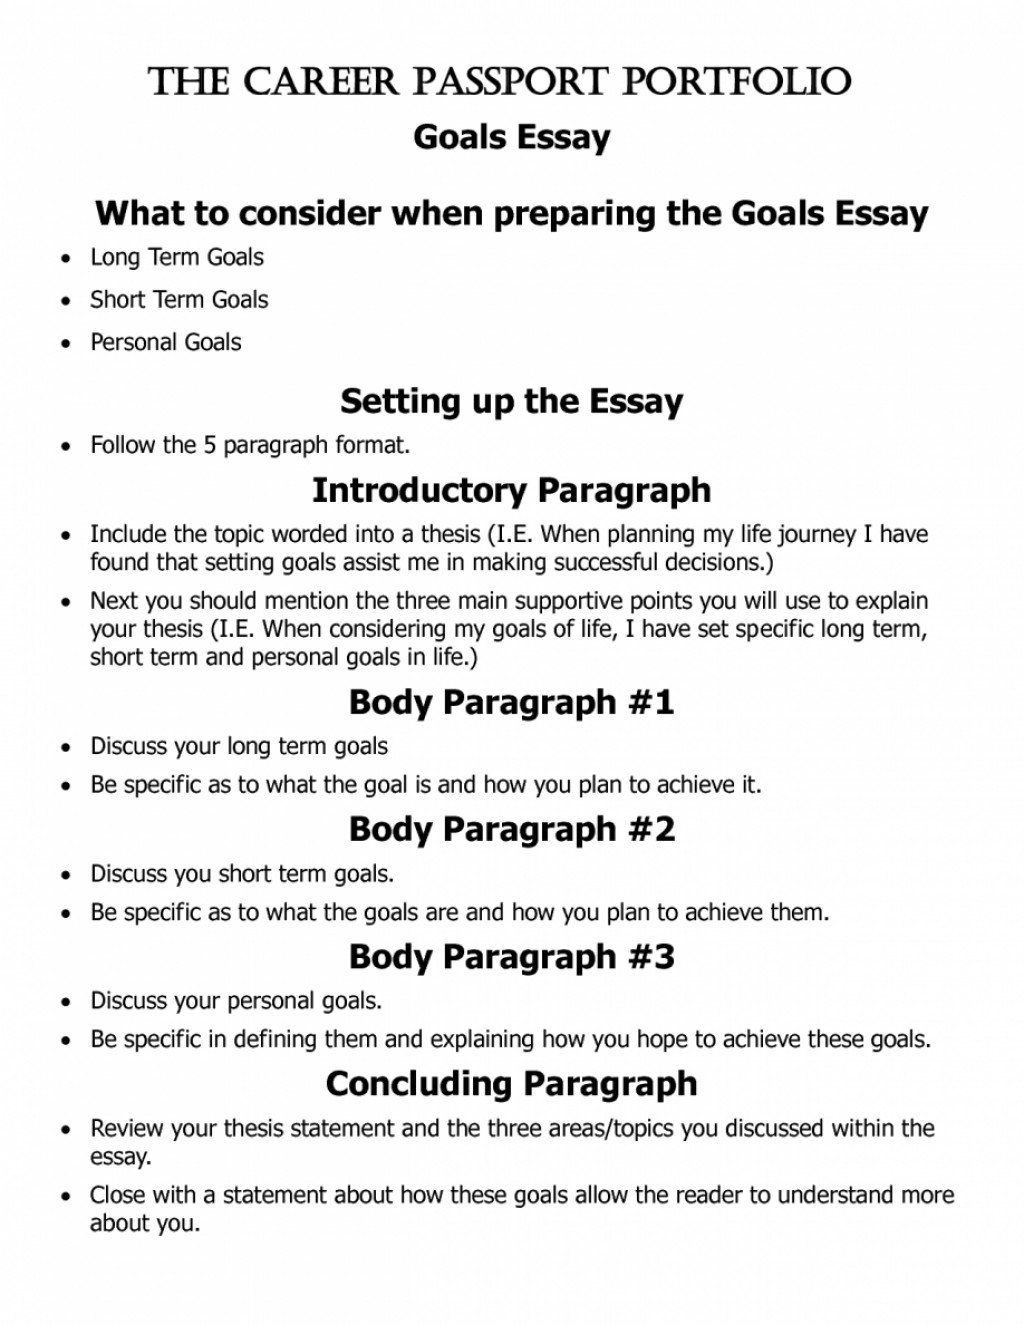 004 How Long Is Short Essay And Term Goals Pevita L Incredible A Answer For College Applications Scholarship Large